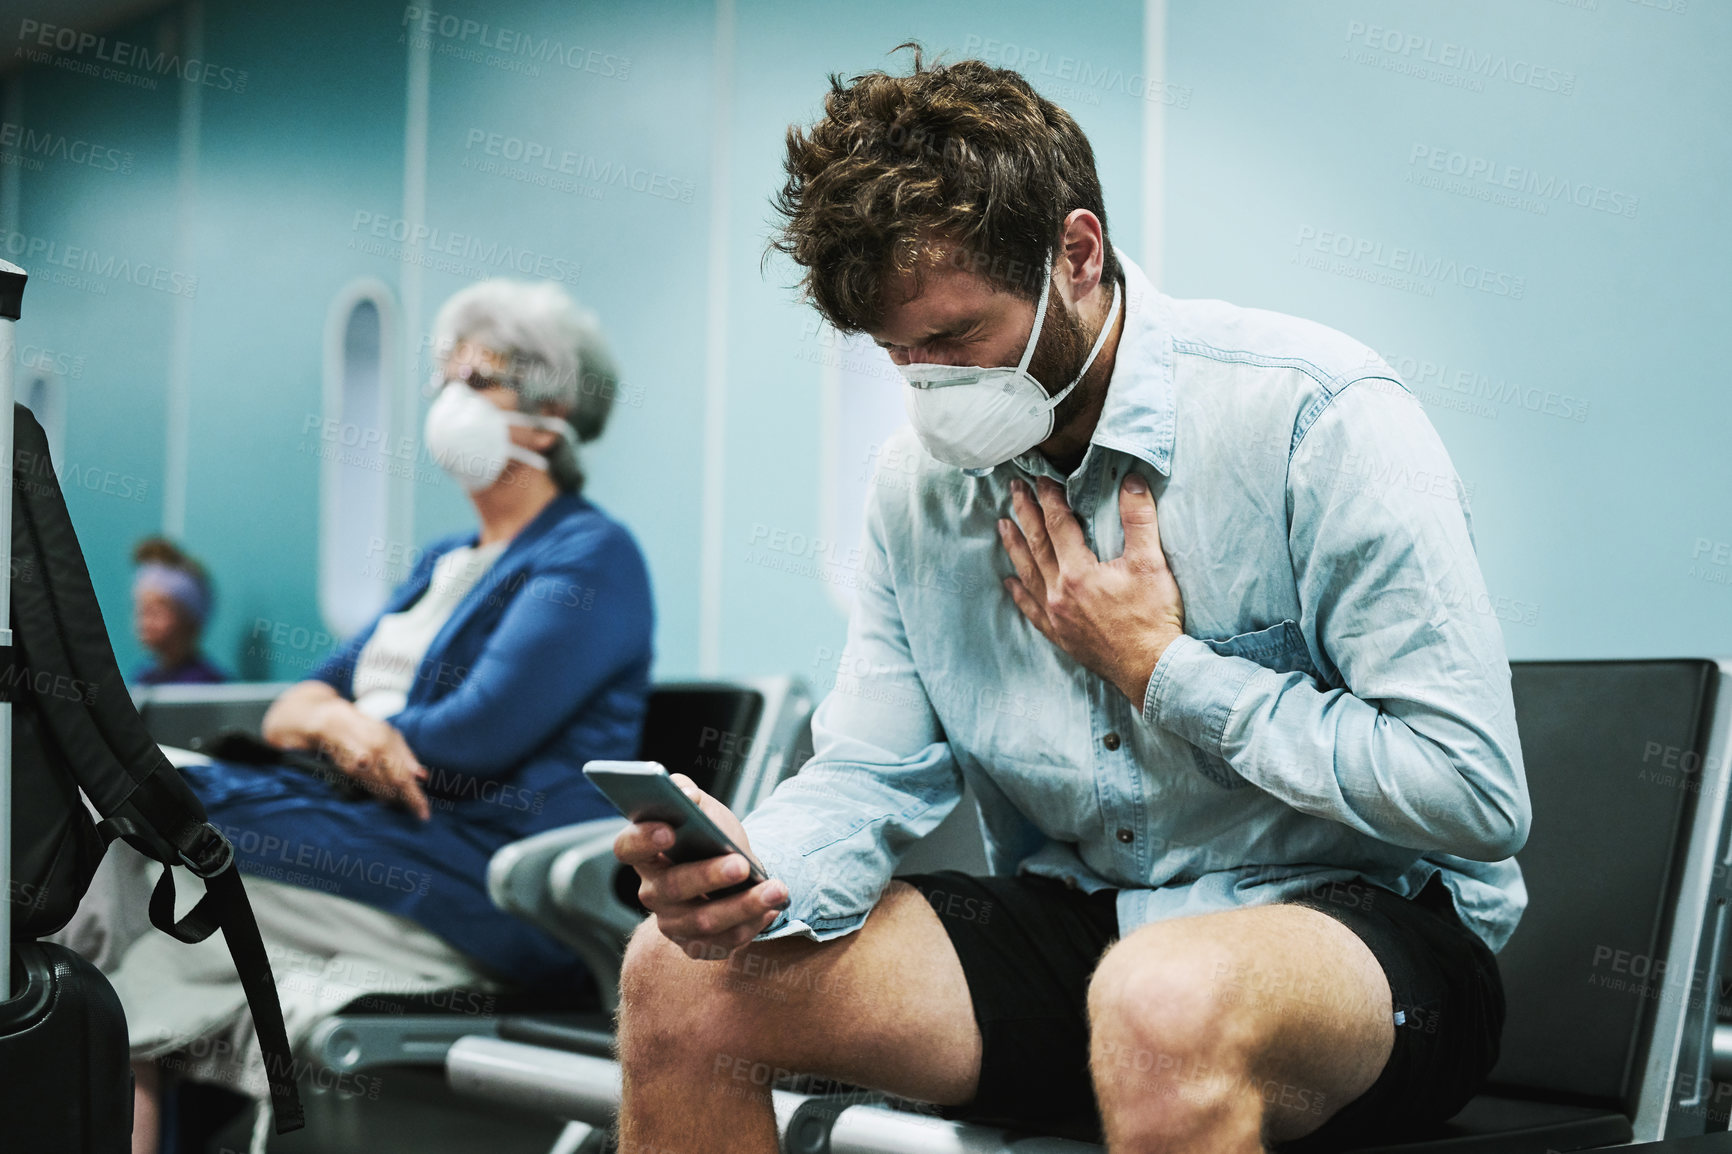 Buy stock photo Shot of a masked young man using a smartphone while experiencing chest pain in an airport waiting area